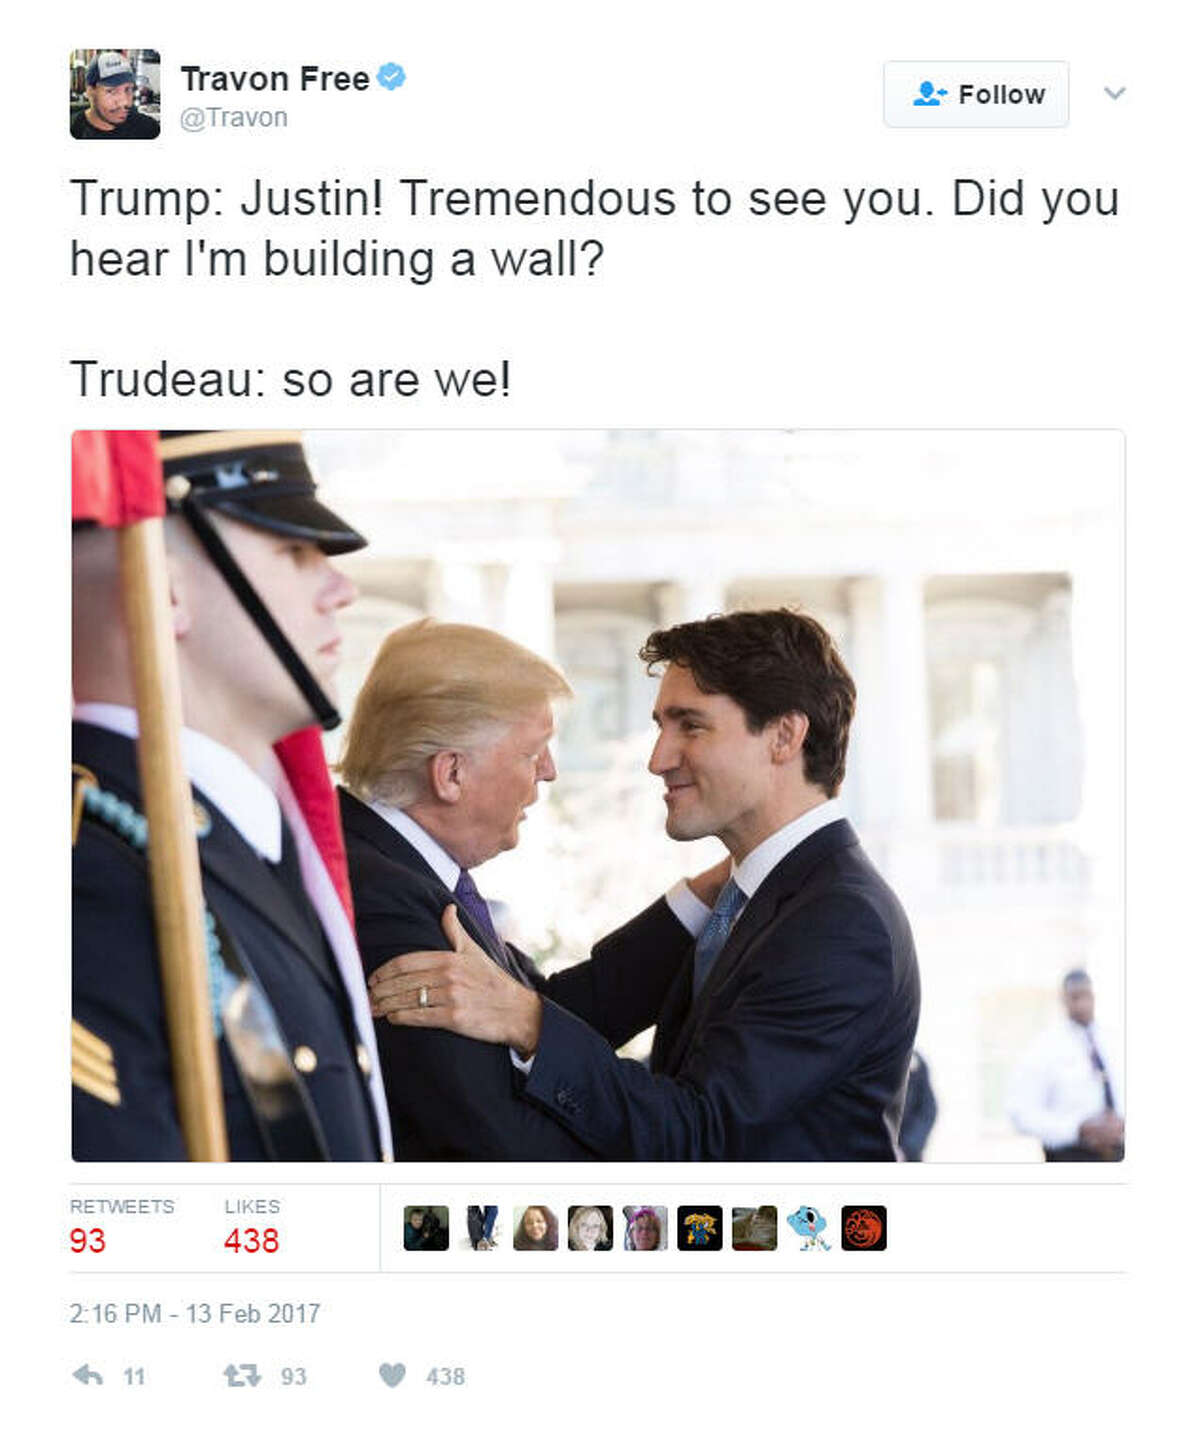 """""""Trump: Justin! Tremendous to see you. Did you hear I'm building a wall? Trudeau: so are we!"""" Source: Twitter"""